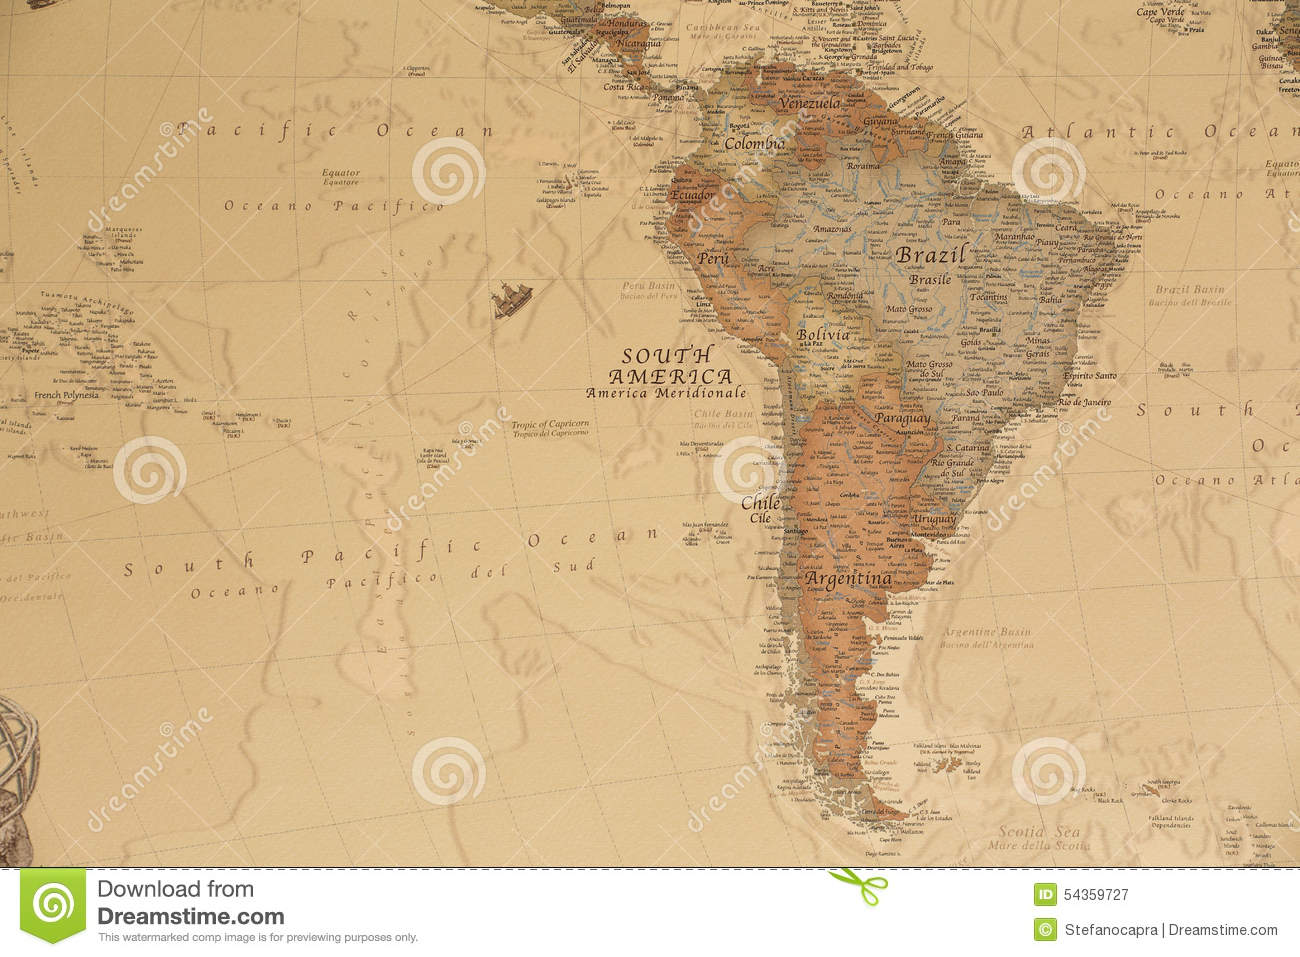 Ancient Geographic Map Of South America Stock Image - Image ... on geographic map of modern europe, geographic map of netherlands, geographic map of guadalajara, geographic map of denmark, geographic map of lebanon, geographic map of czech republic, geographic map of san salvador, geographic map of pacific ocean, geographic map of new york state, geographic map of belize, geographic map of serbia, geographic map of arab countries, geographic map of hong kong, geographic map of the caribbean, geographic map of scandinavia, geographic map of far east, geographic map of ghana, geographic map of bahrain, geographic map of japan, geographic map of gobi desert,